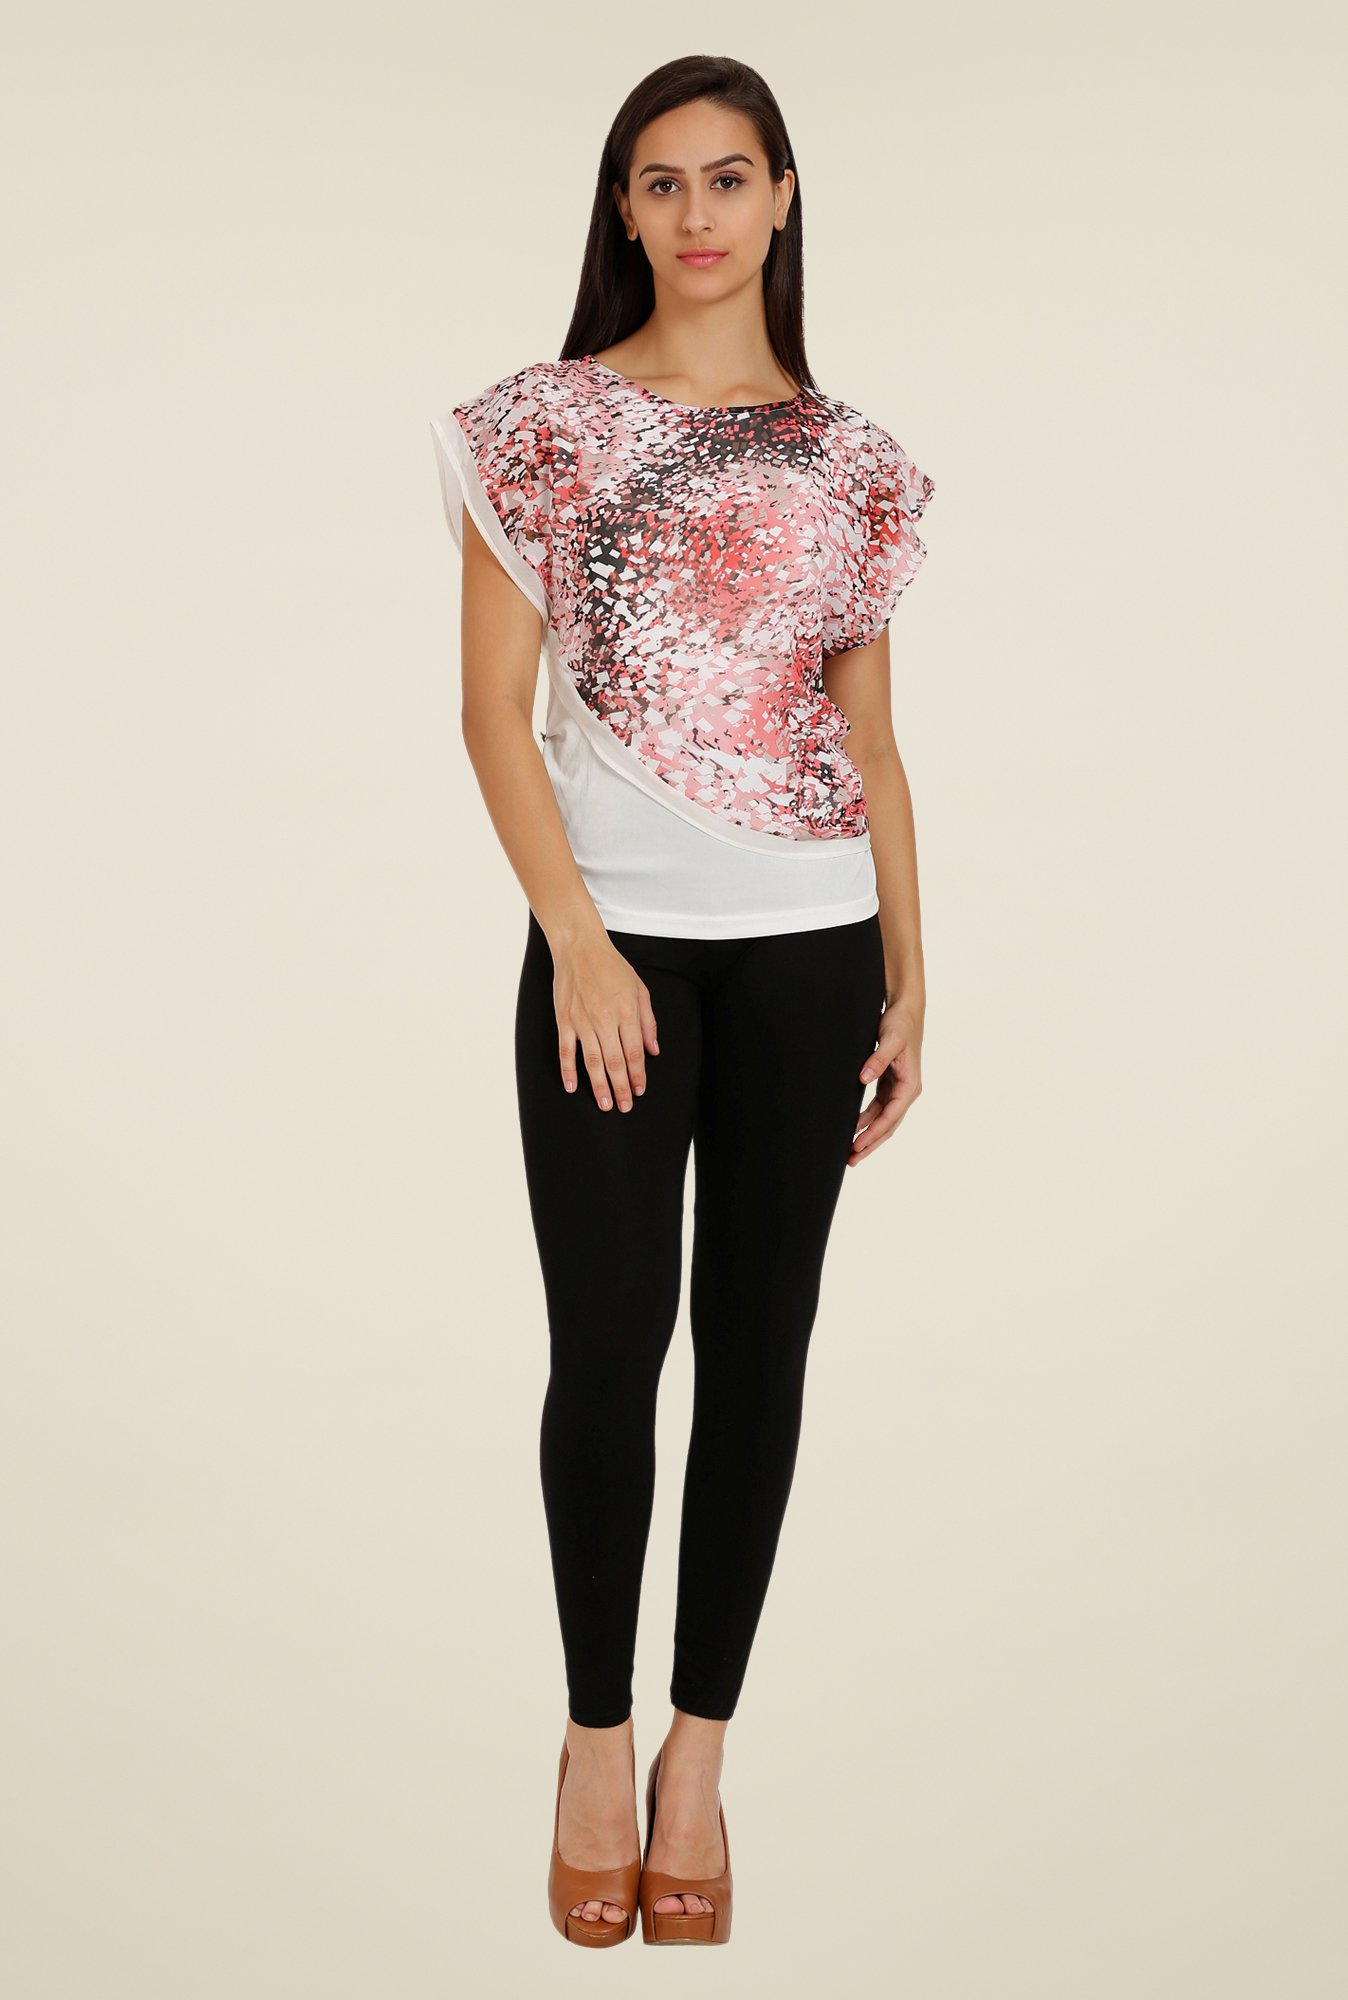 Forever Fashion Pink Printed Blouse